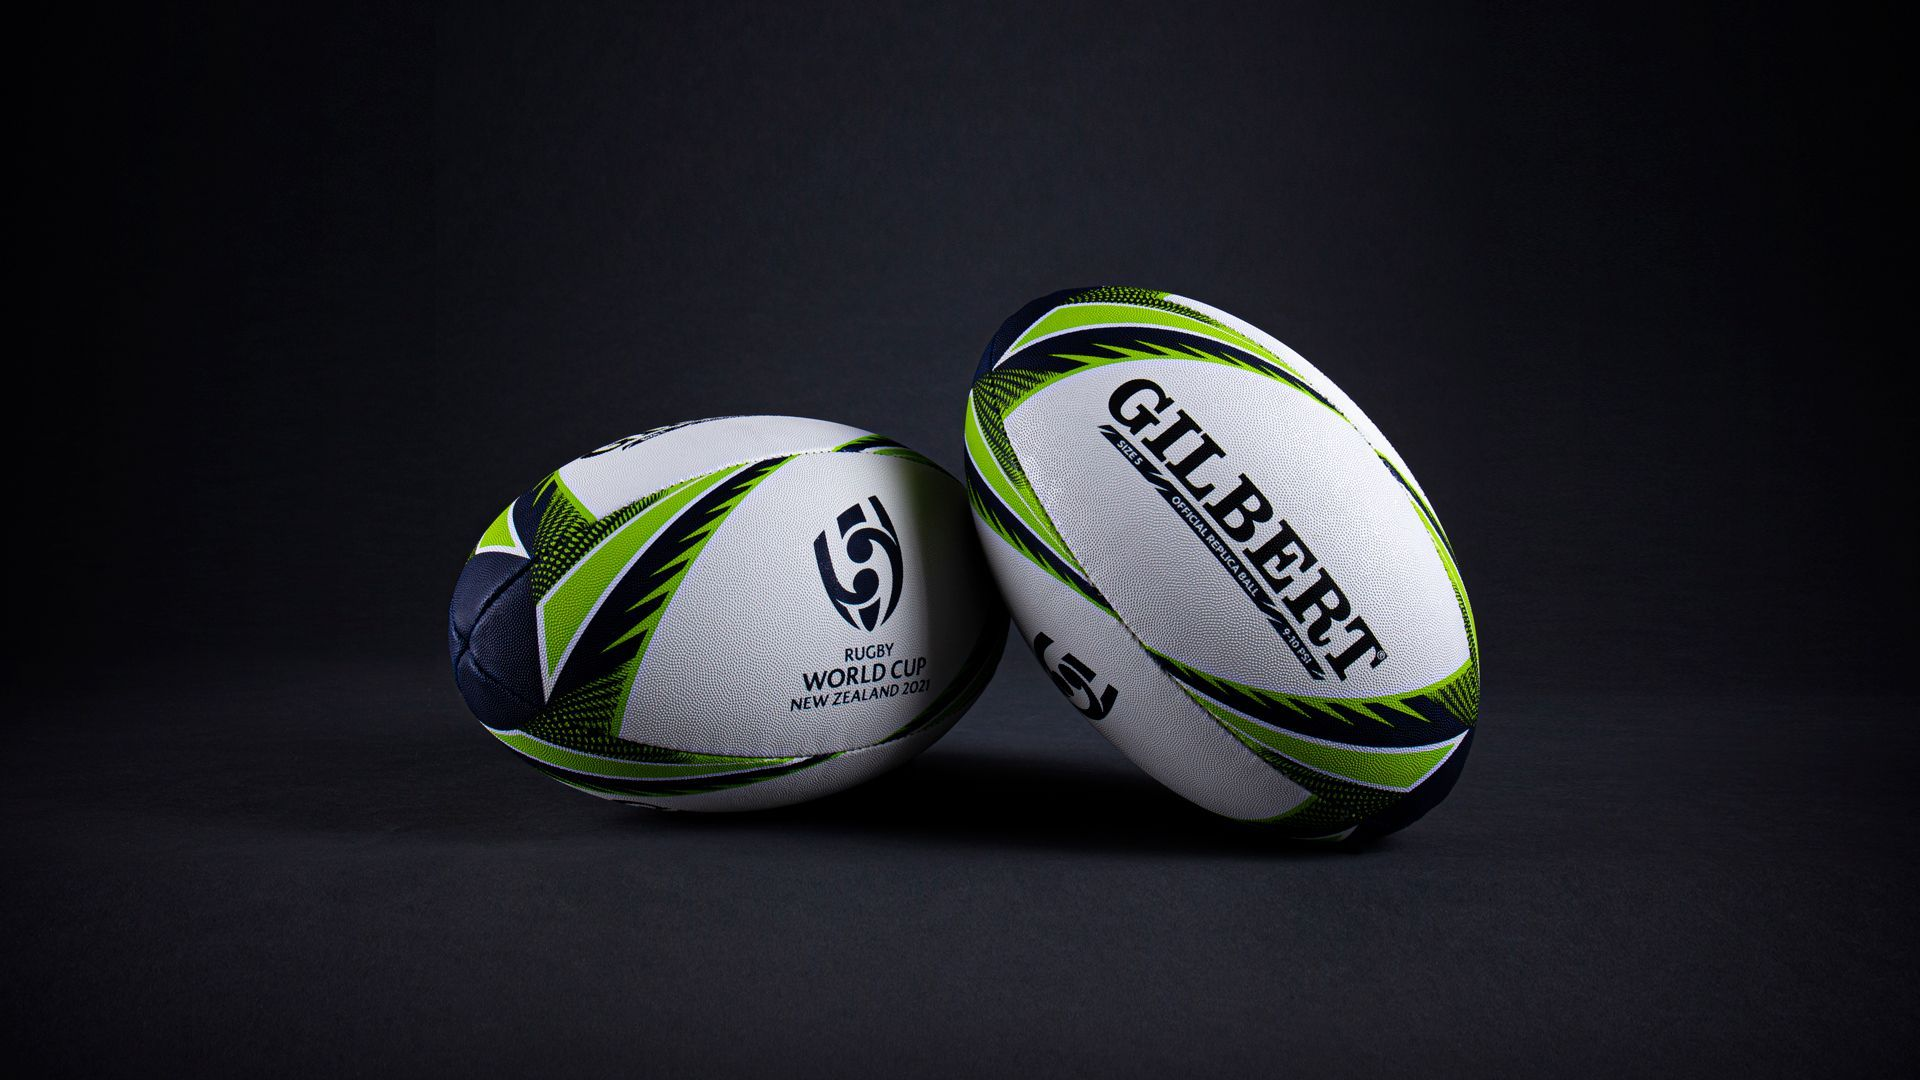 RWC 2021 will be on schedule